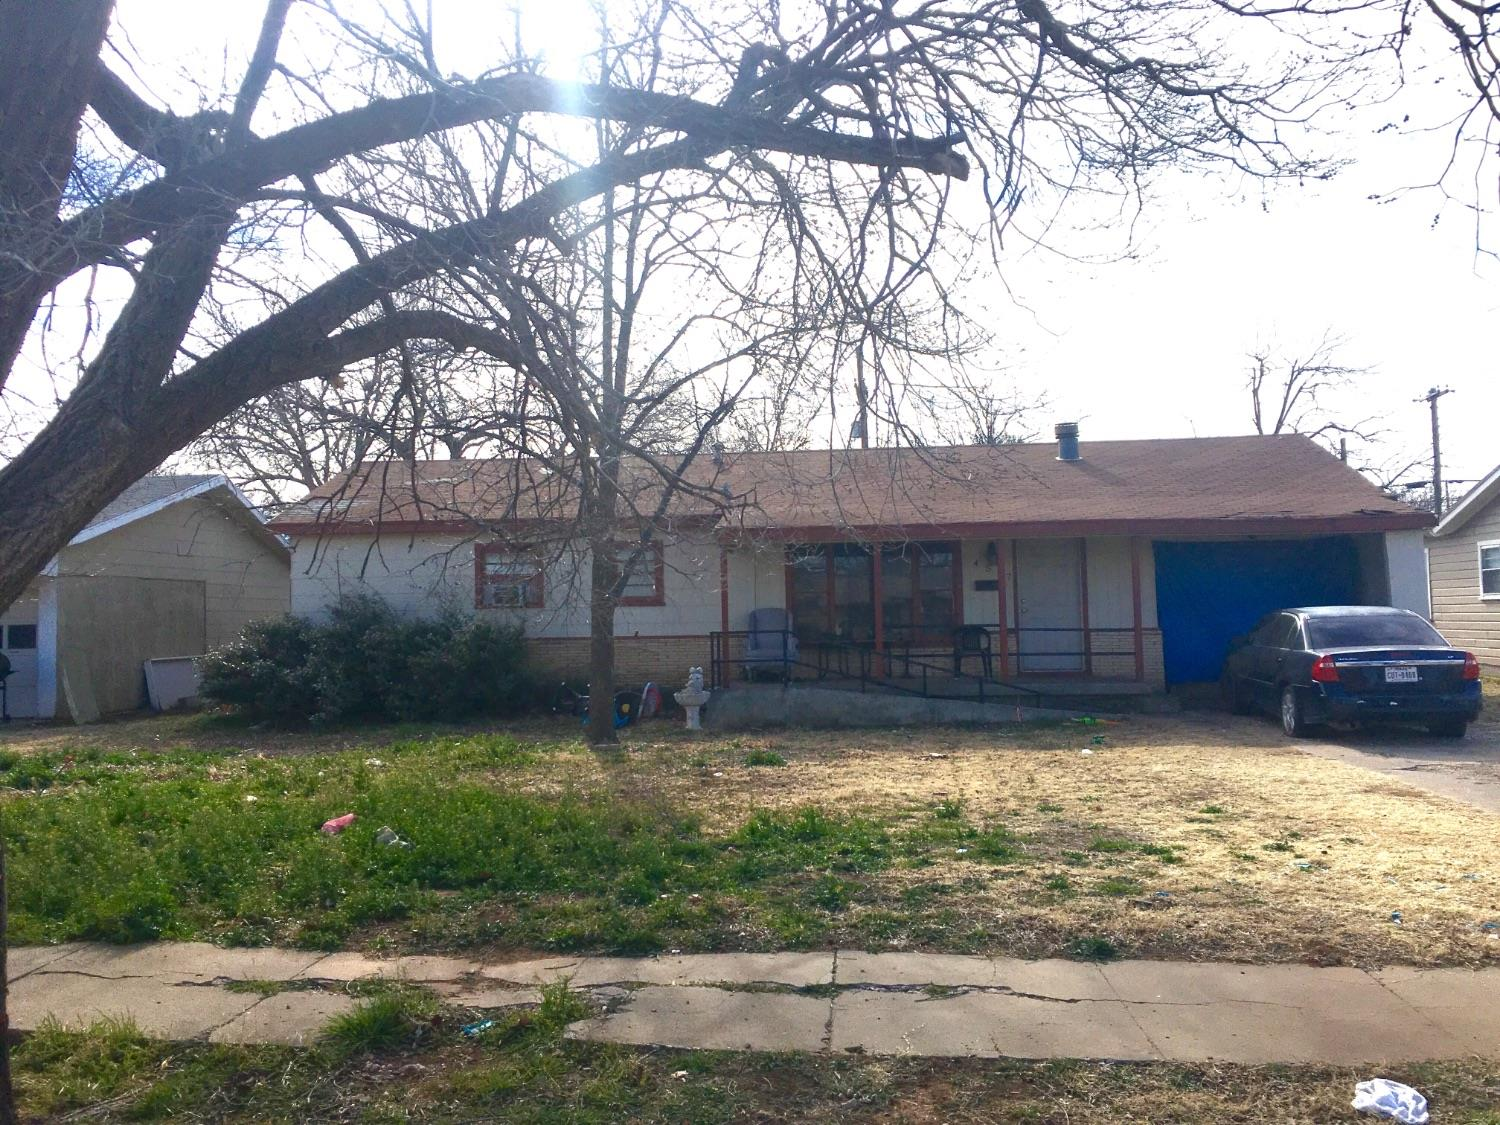 Charming investment home close to Texas Tech and the Medical District! Wonderful opportunity to own rental property with great occupants. This home is for investment purposes as it has tenants. Lease terms convey with purchase. Rents for $850/mo with $500 deposit.  Roof is being replaced.